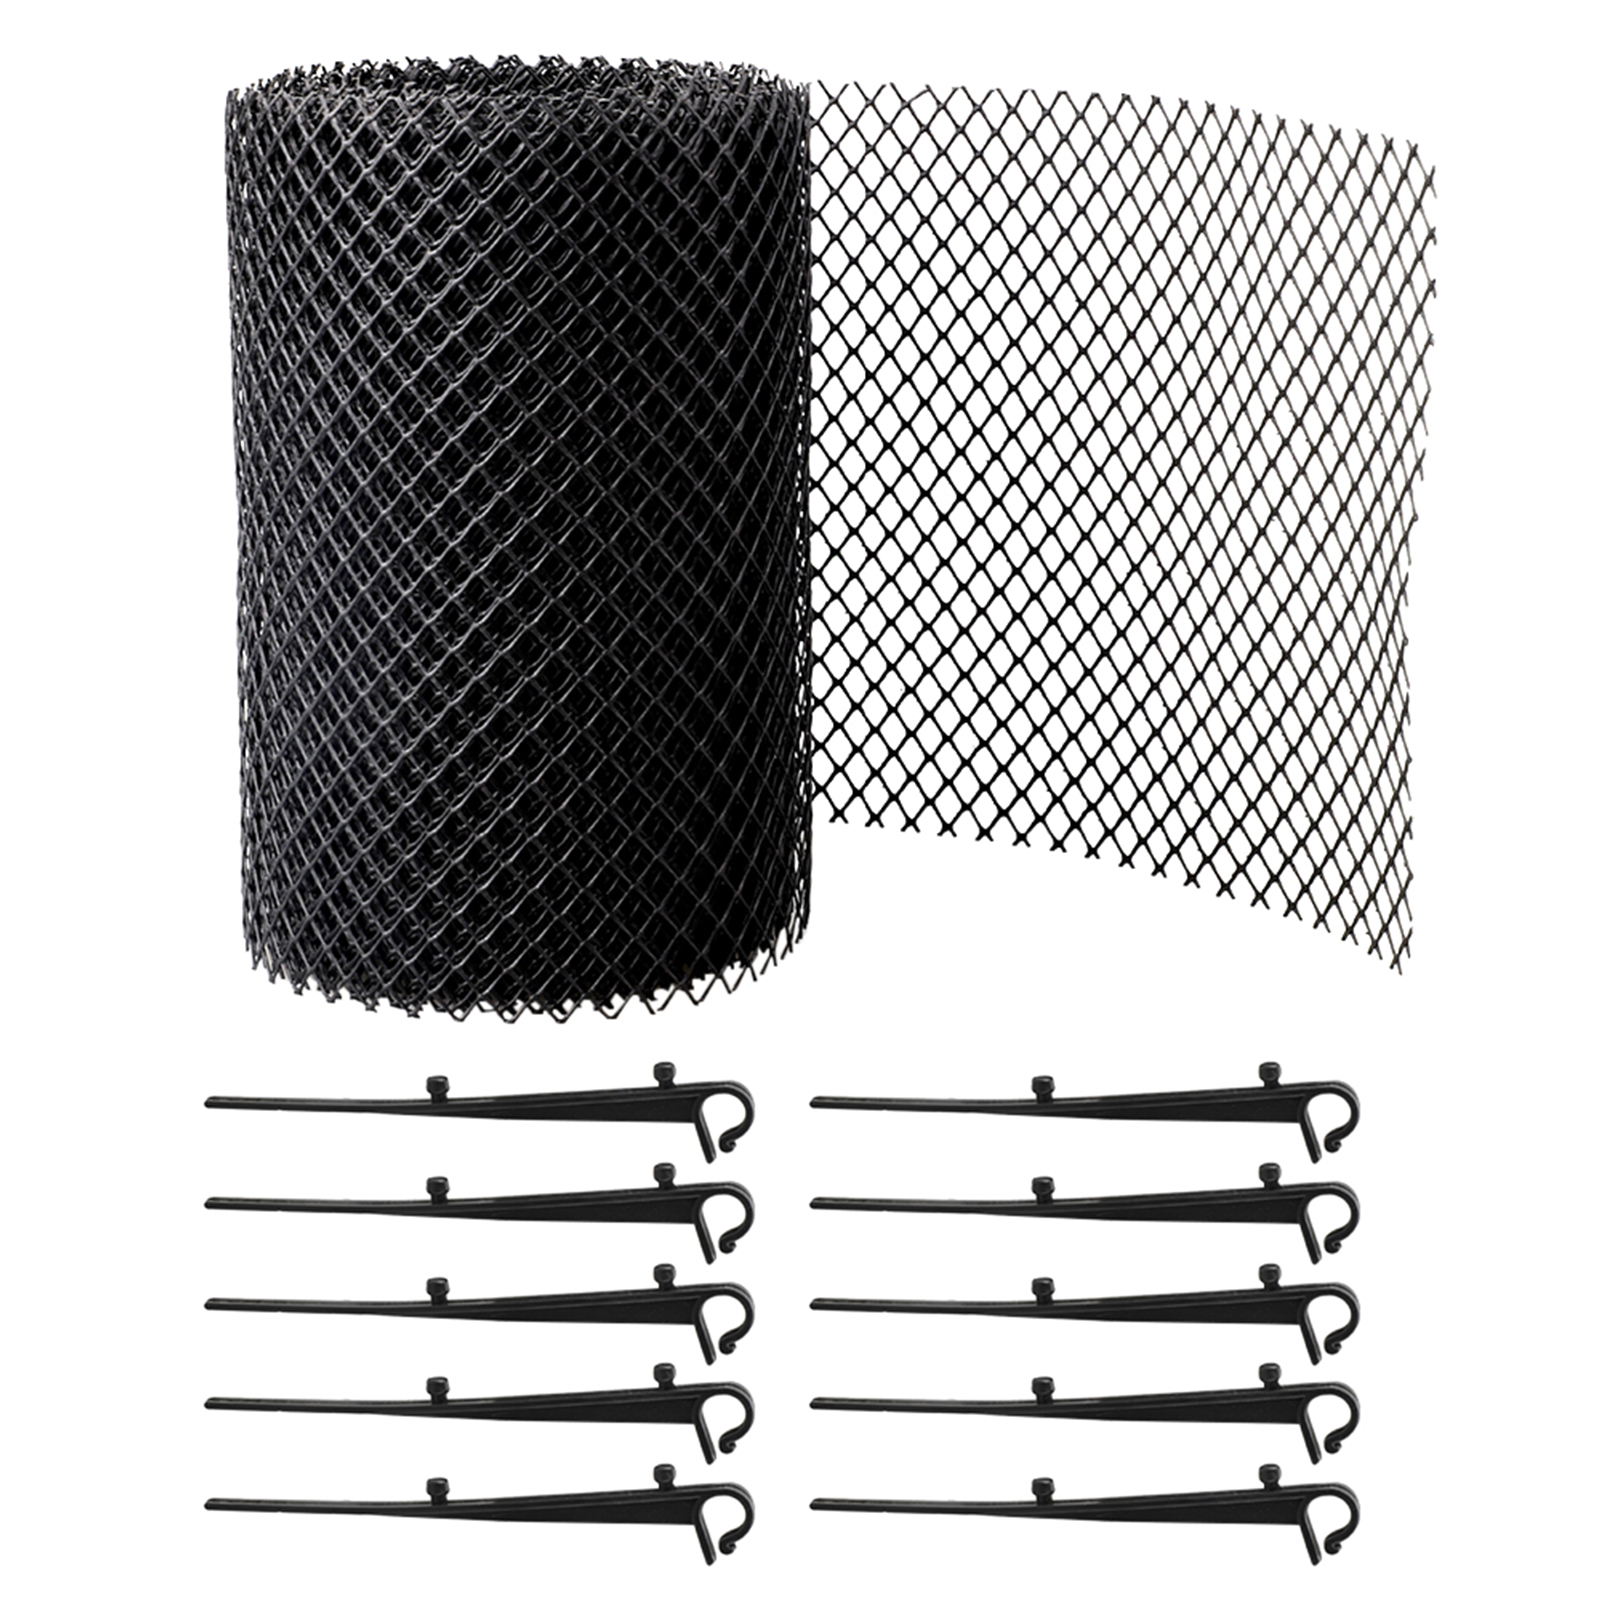 Symbol Of The Brand Anti Clogging Easy Install Stops Leaves Reduce Overflow Outdoor Drain Gutter Guard Balcony Mesh Cover Flexible Cleaning Tool Pretty And Colorful